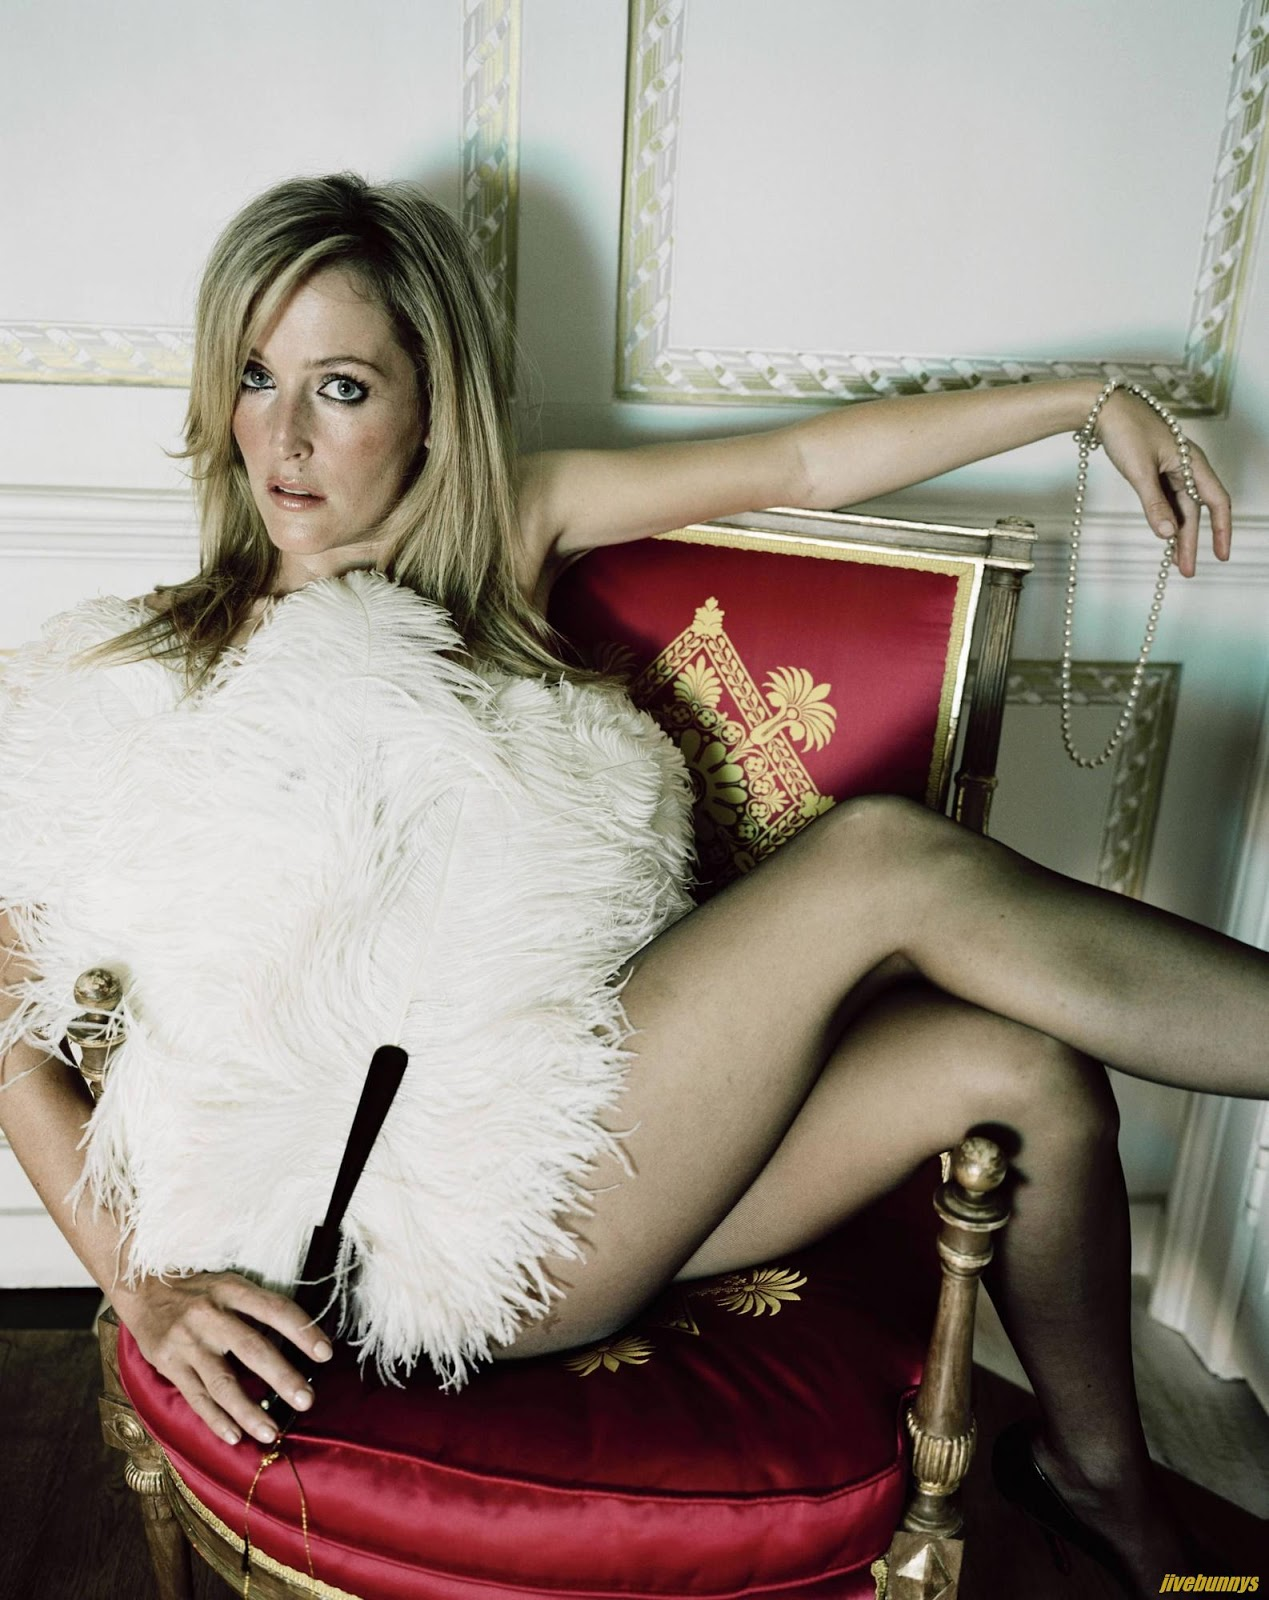 Gillian Anderson nude, topless pictures, playboy photos